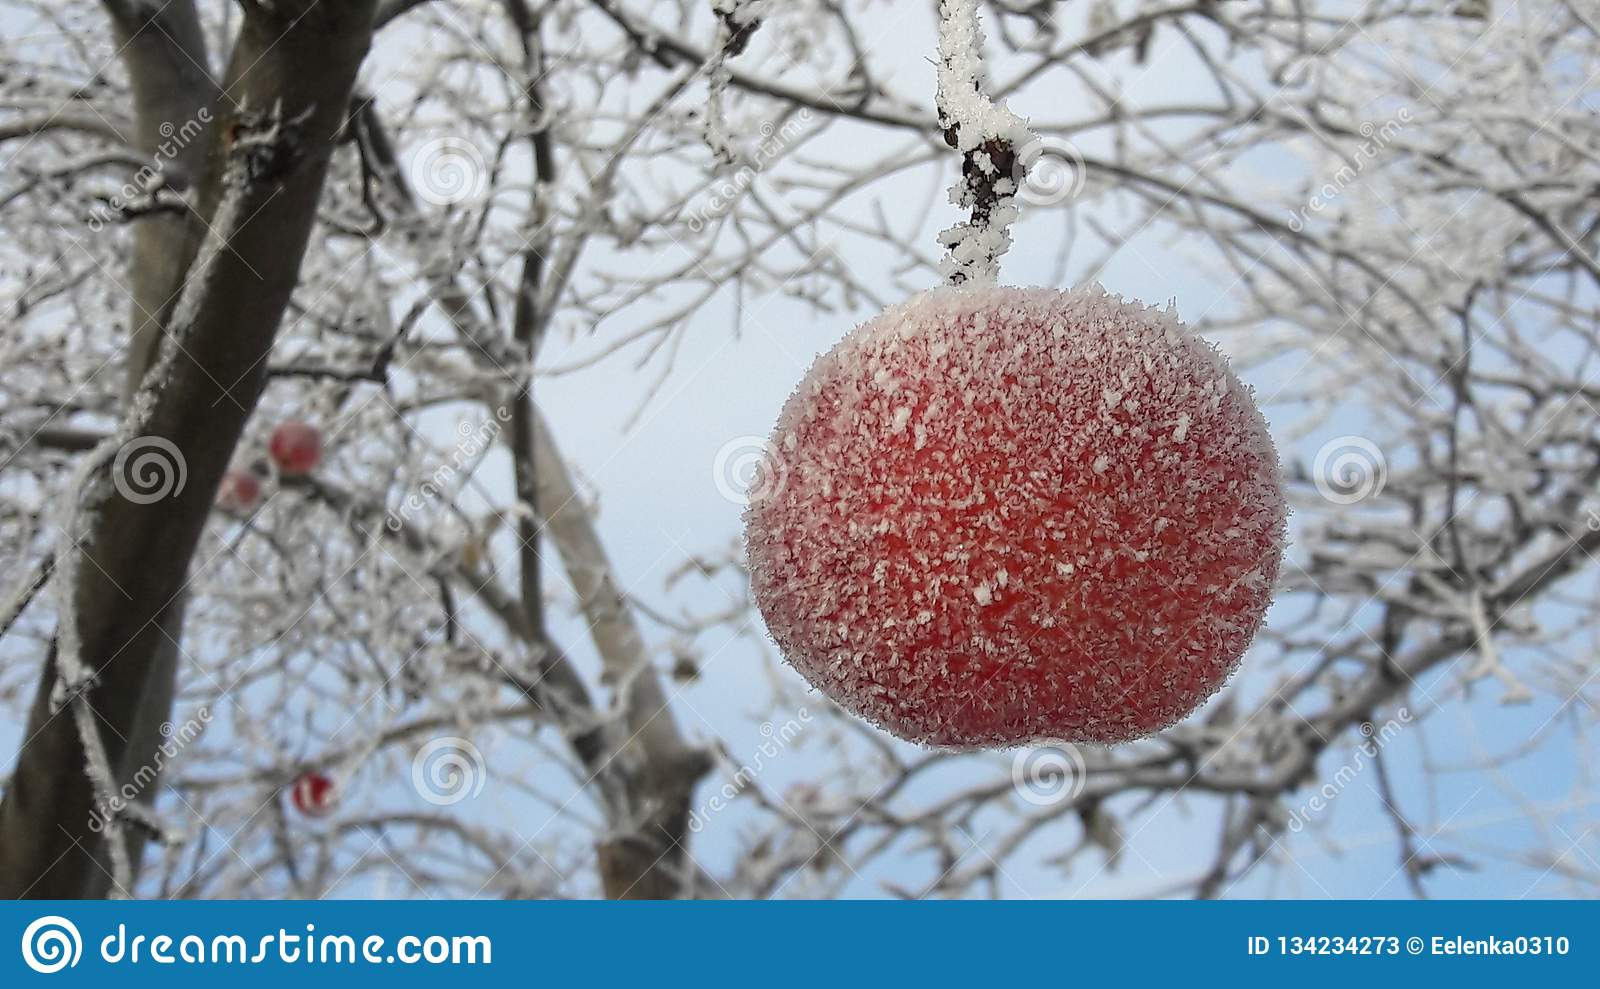 Frozen apple covered with snow on a branch in the winter garden. Macro of frozen wild apples covered with hoarfrost.